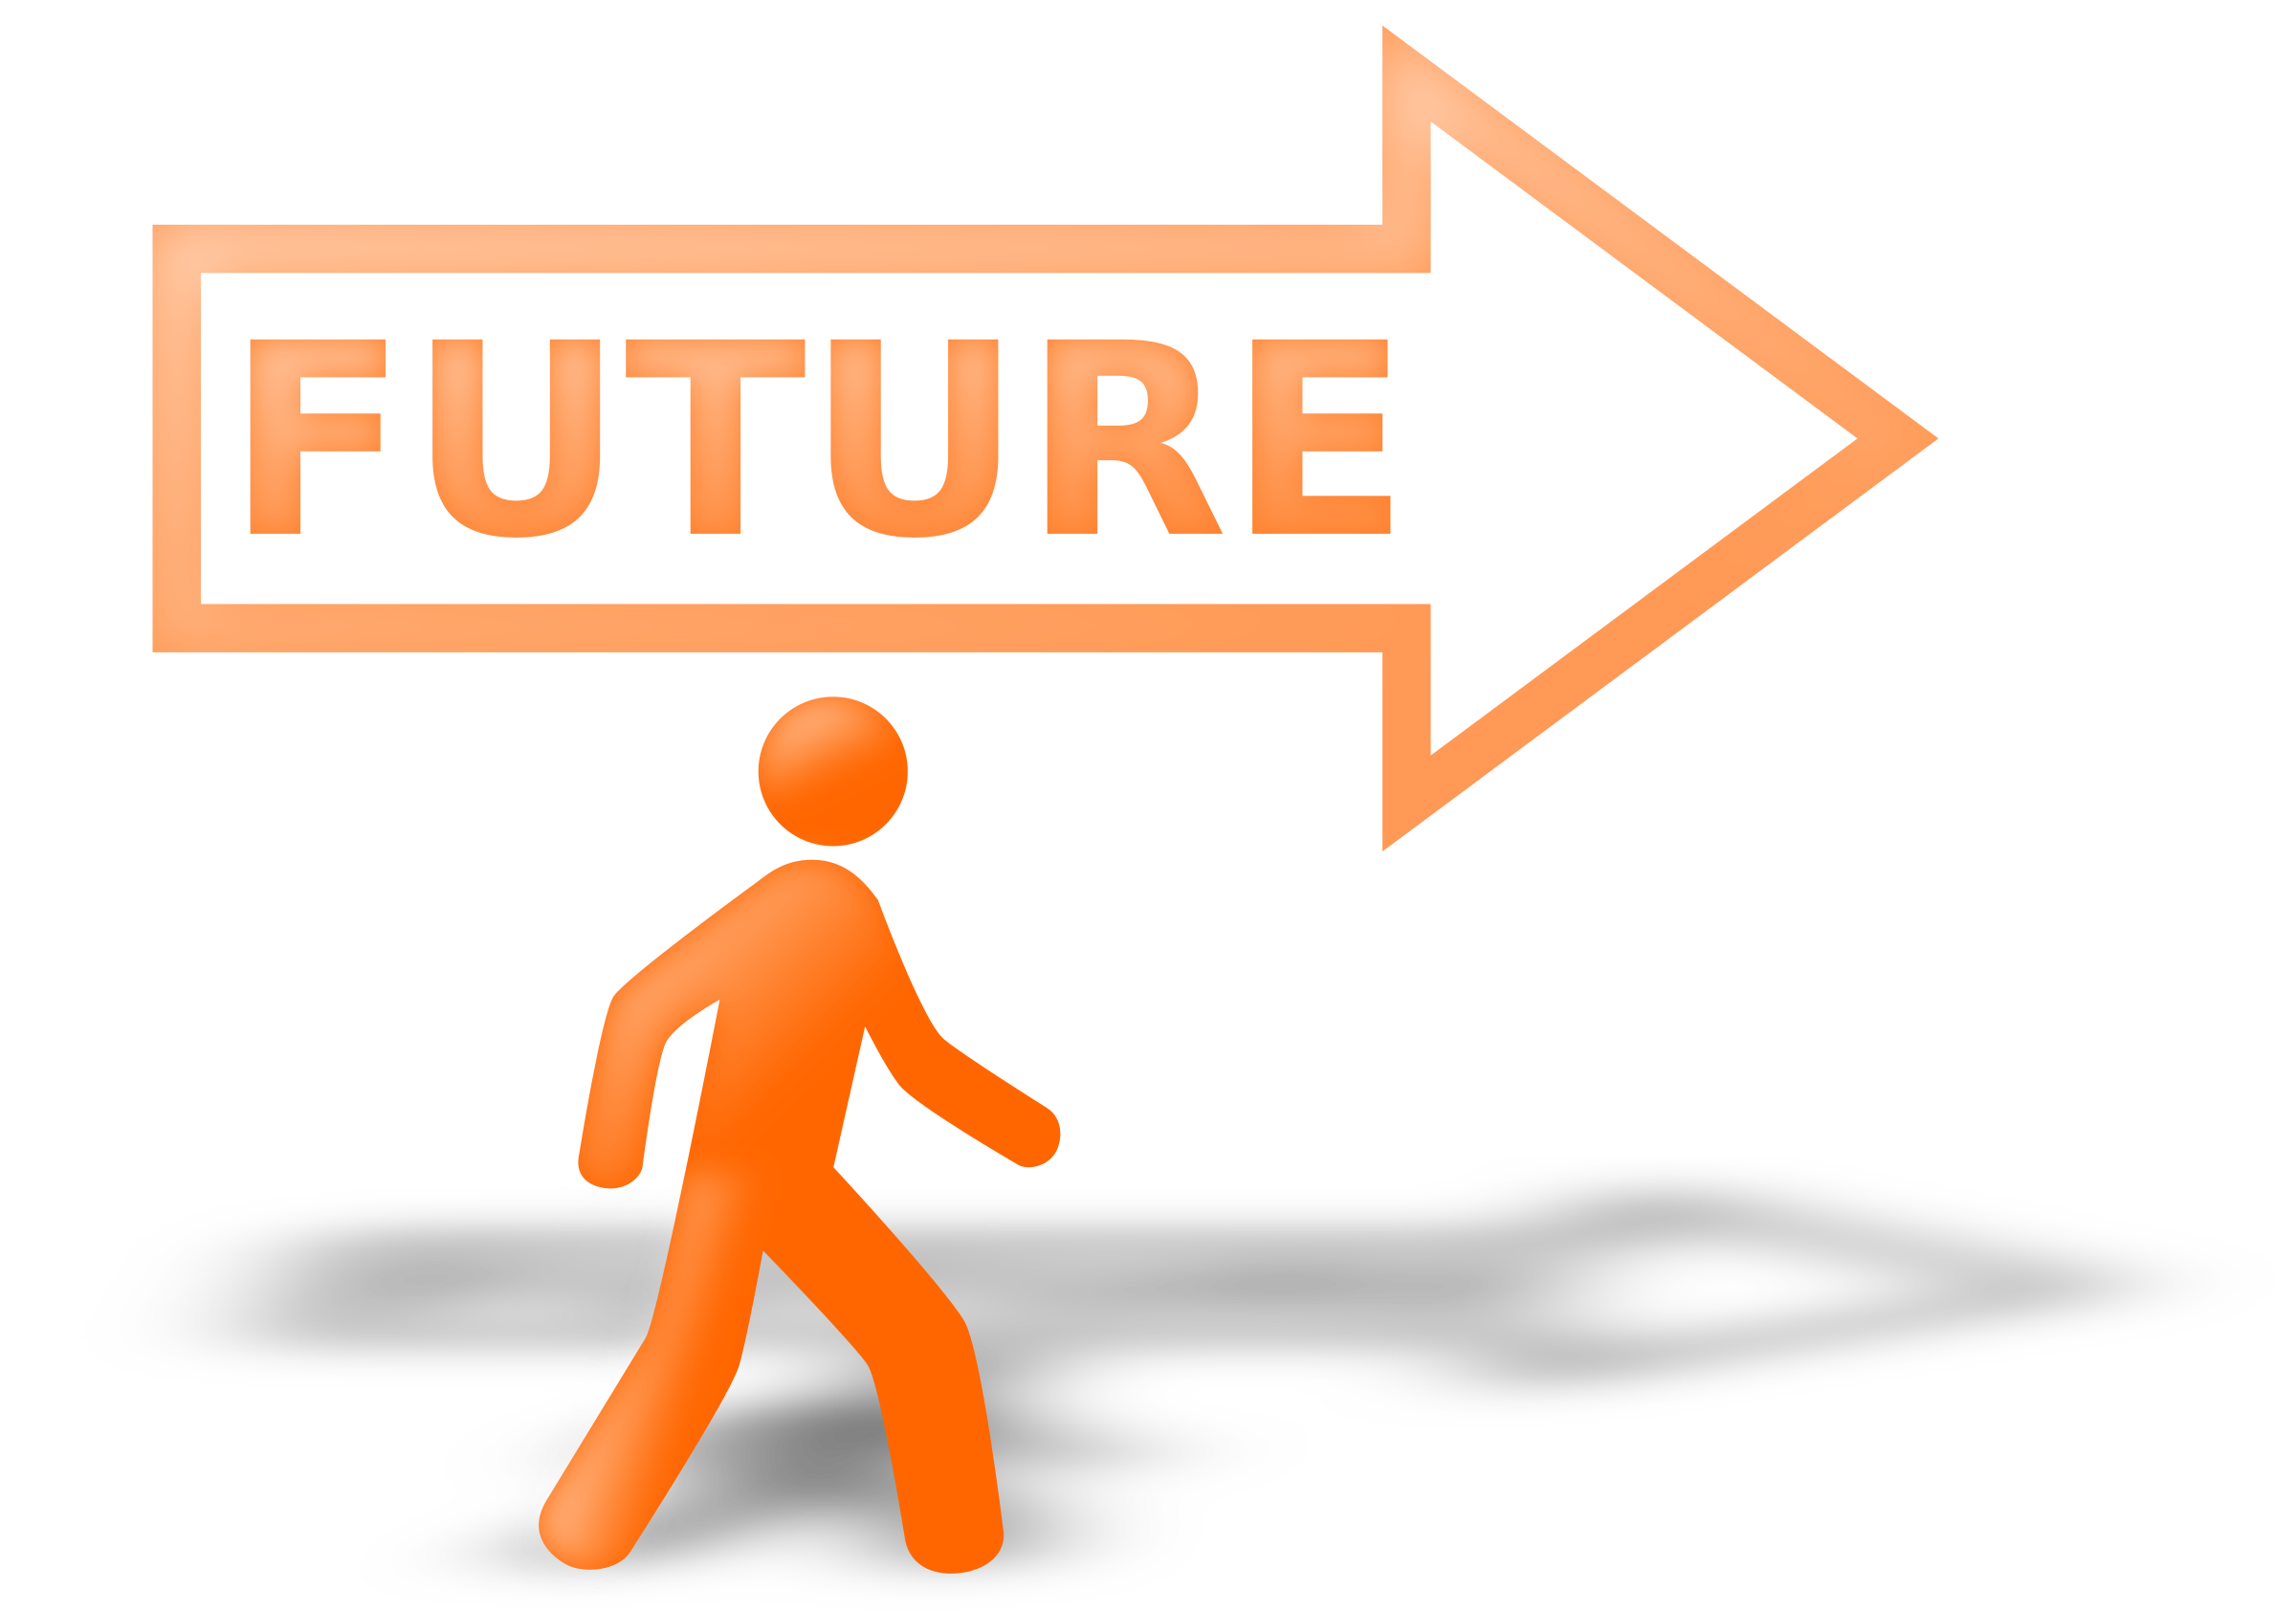 Future clipart png. Collection of high